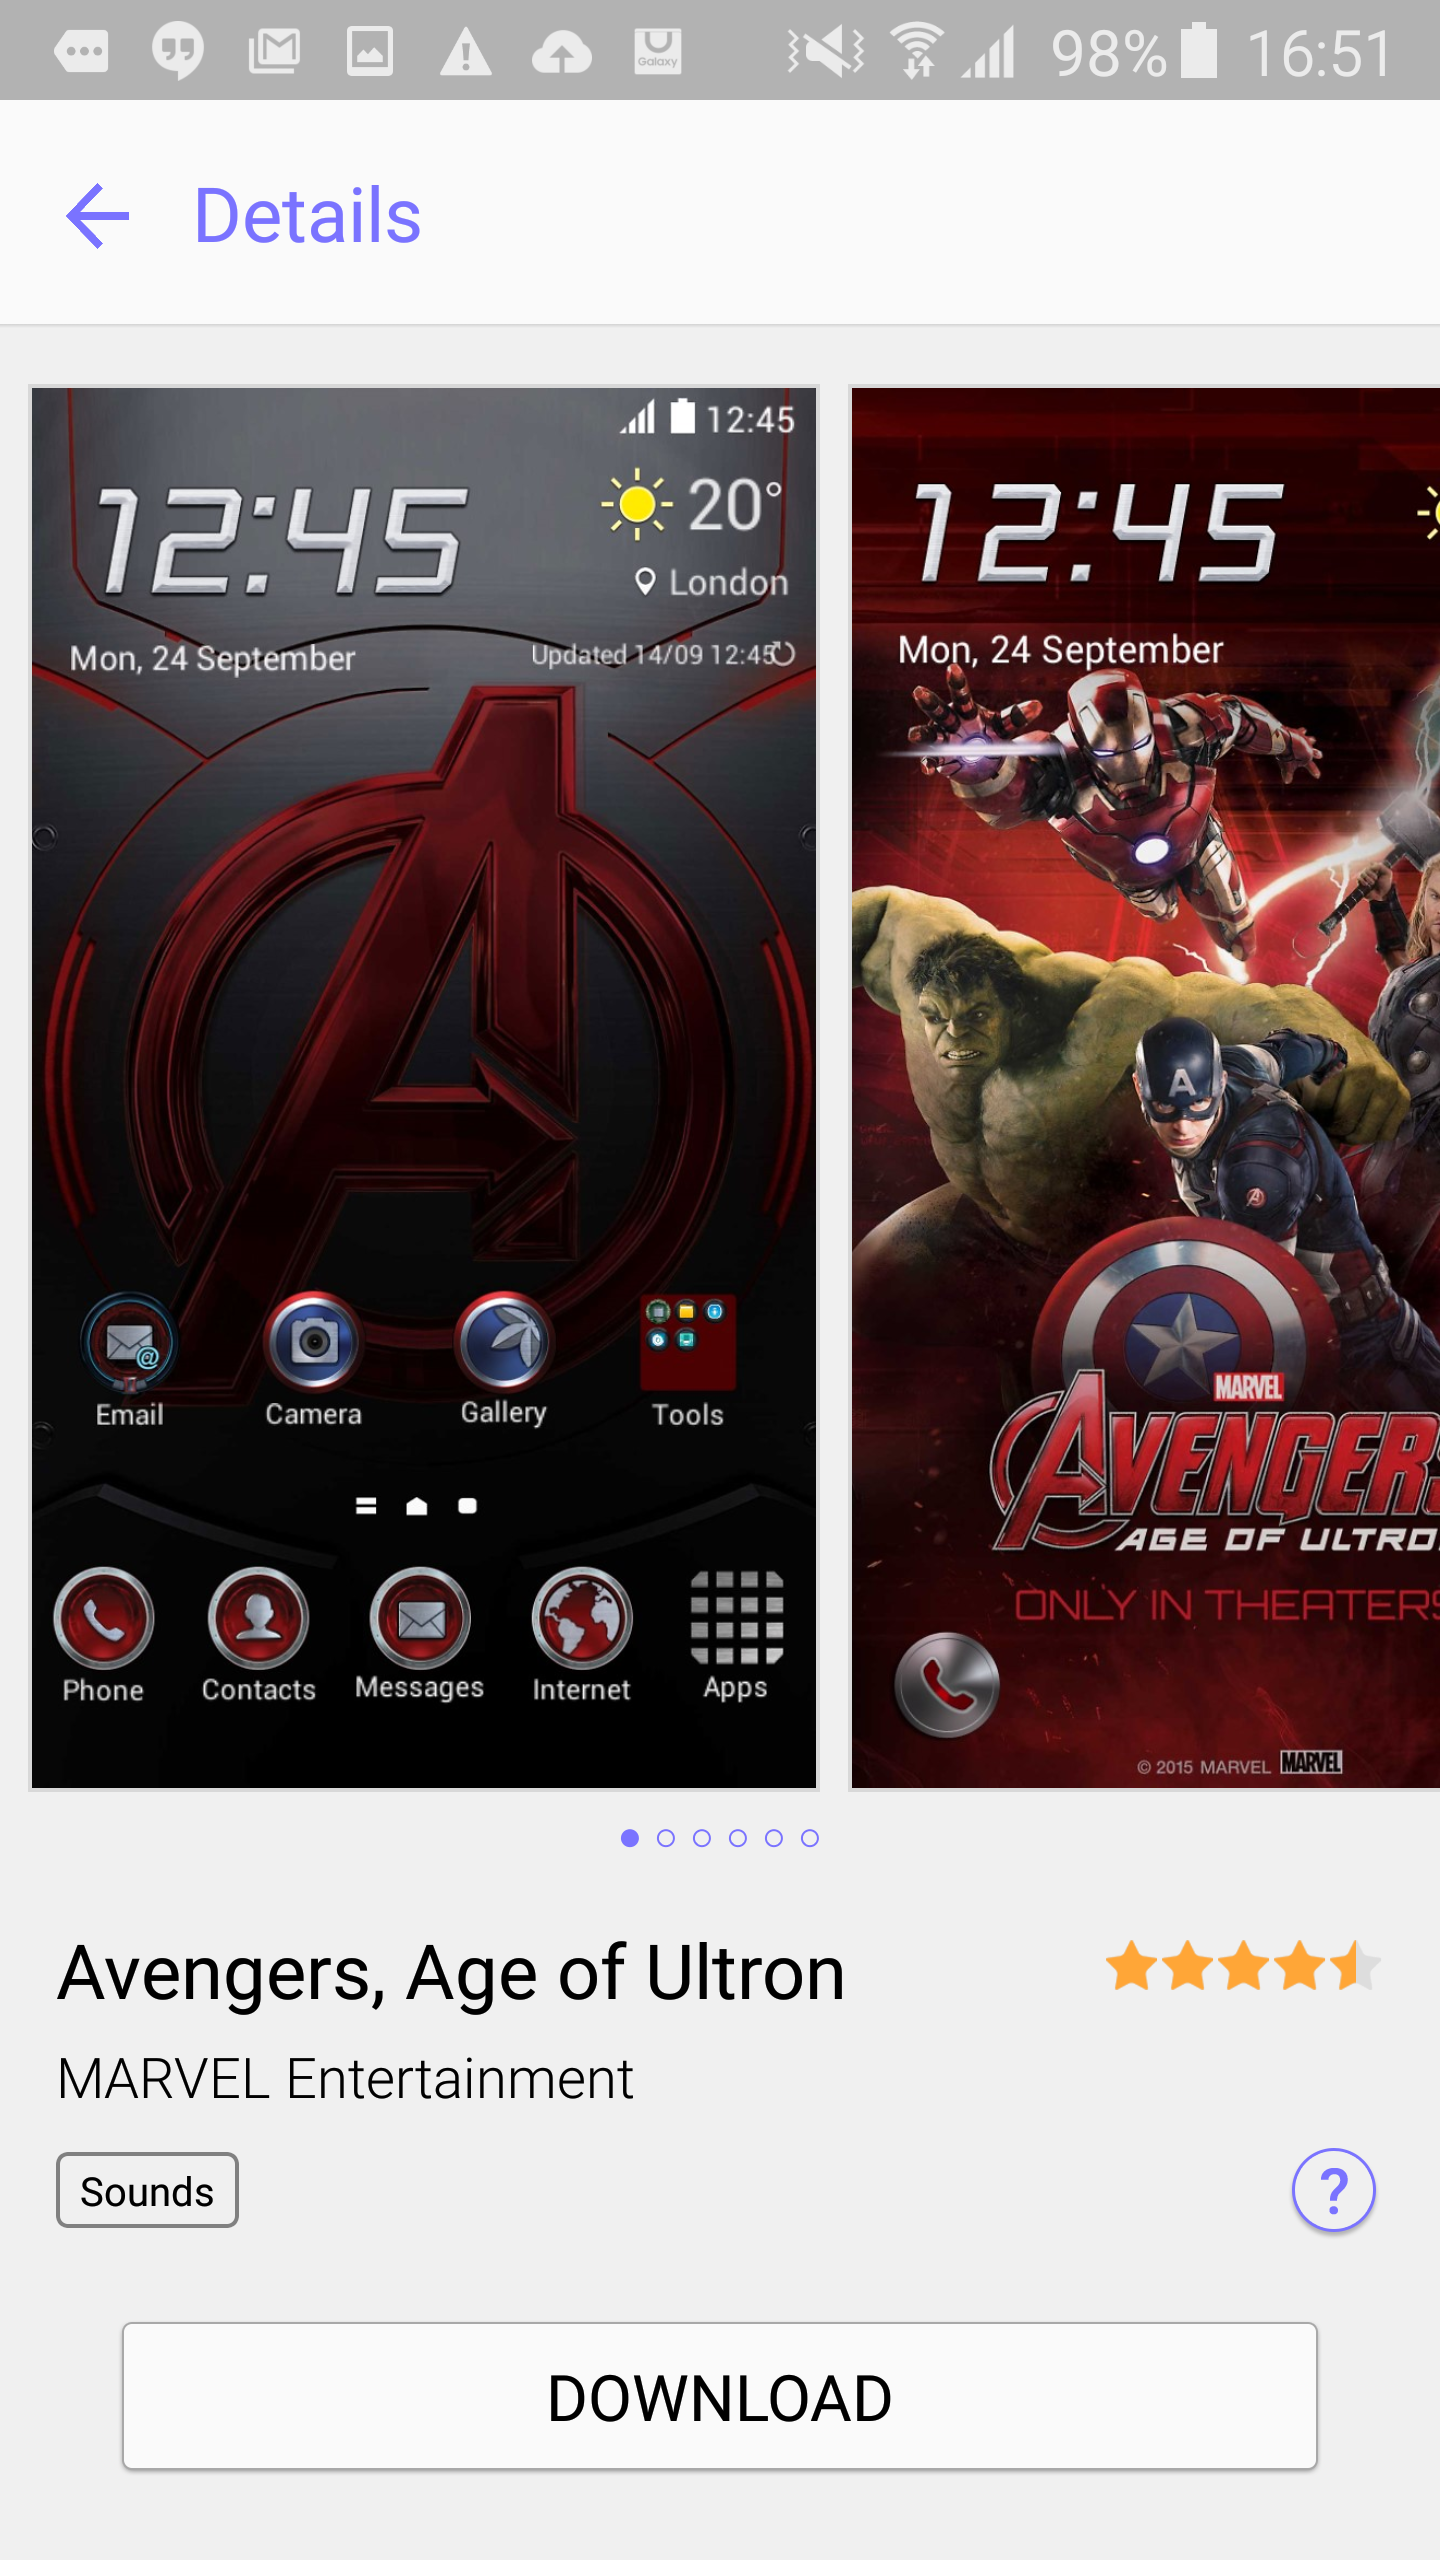 It's kind of tacky, but if you're into the Avengers you might like this Age of Ultron theme.